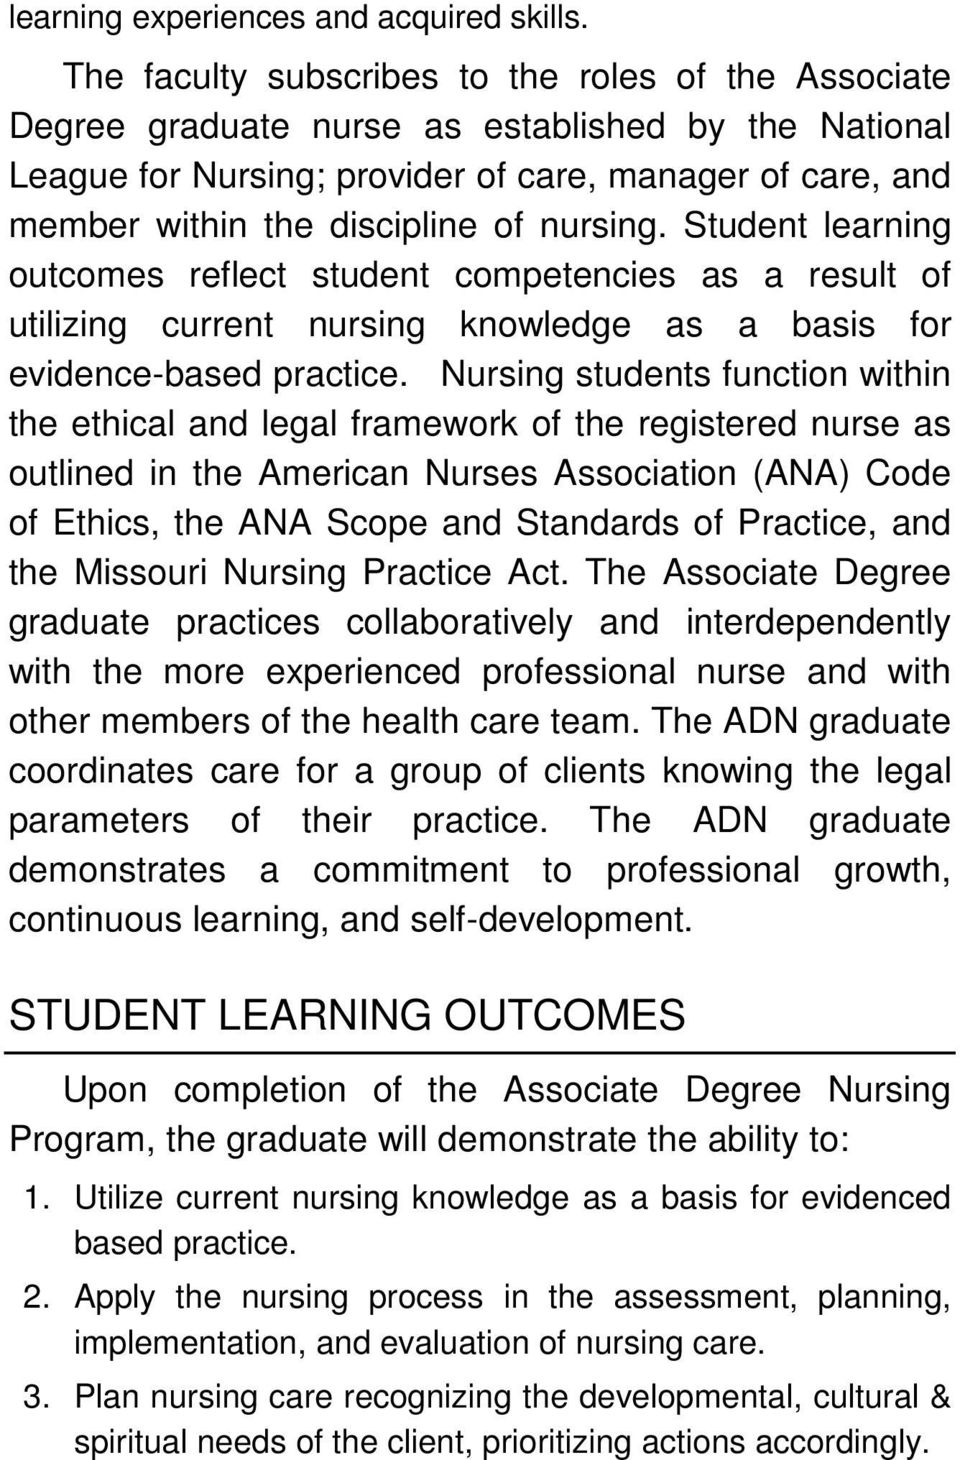 nursing. Student learning outcomes reflect student competencies as a result of utilizing current nursing knowledge as a basis for evidence-based practice.